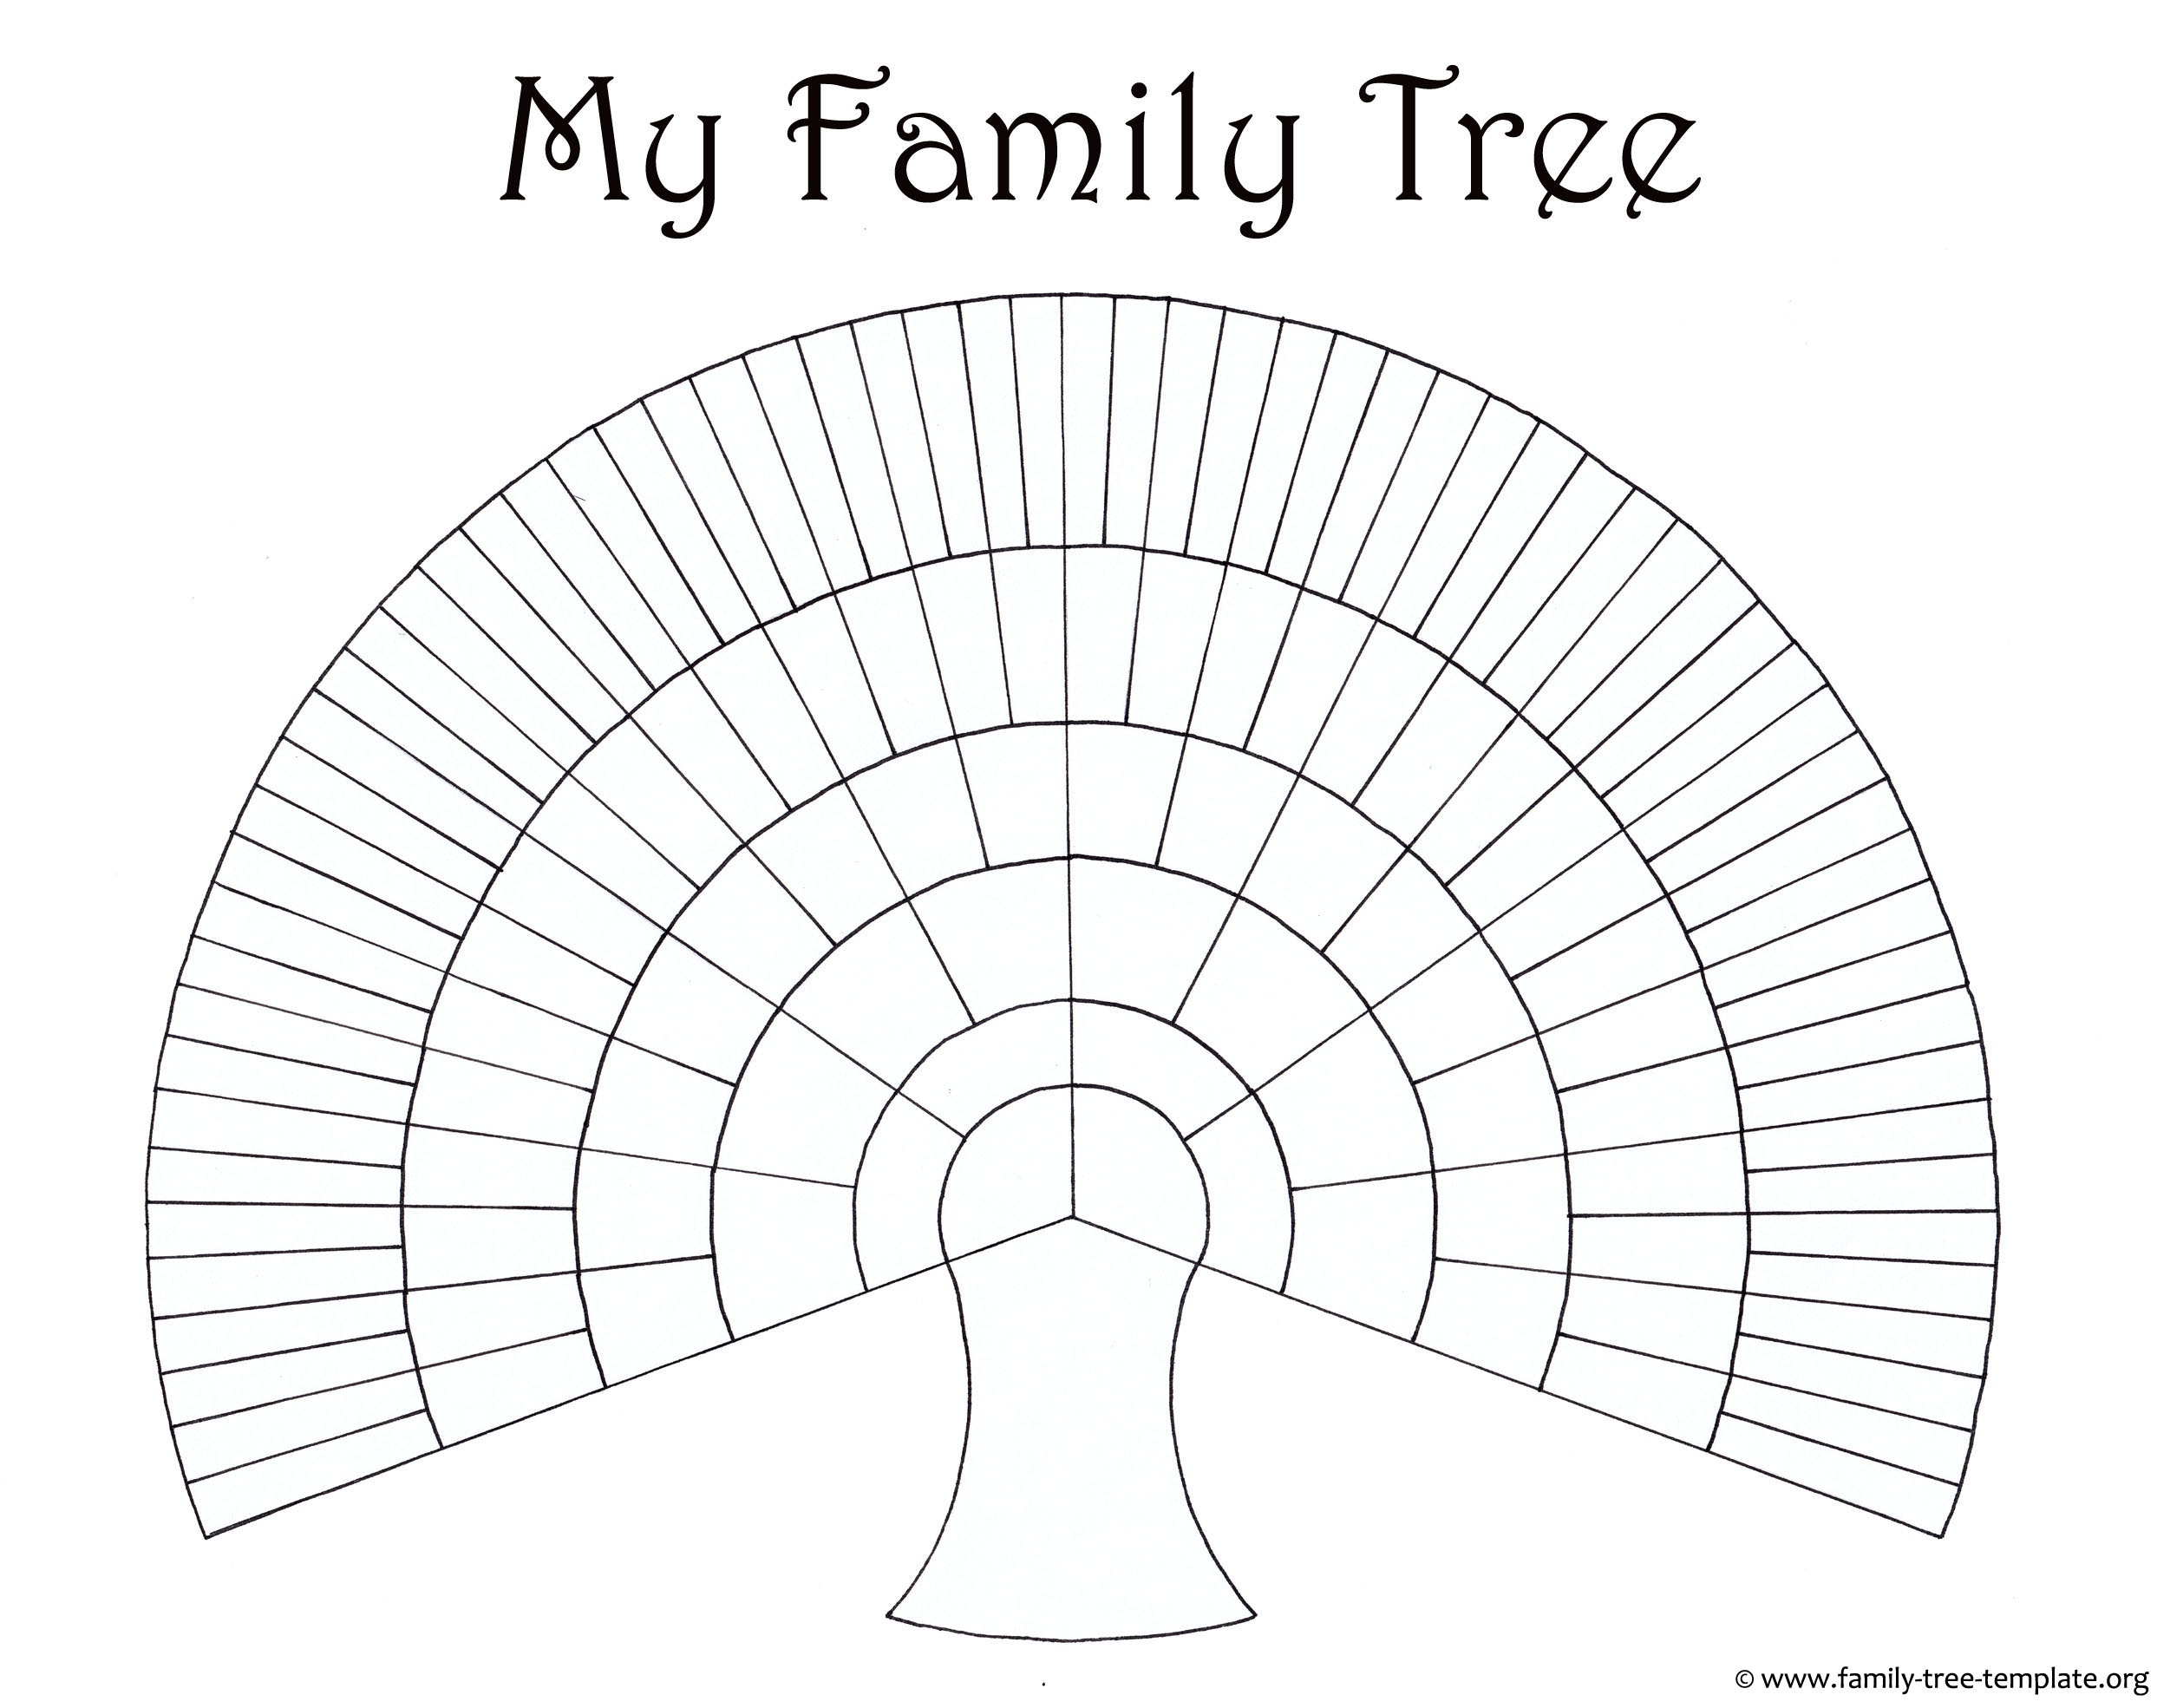 Blank Family Trees Templates And Free Genealogy Graphics - Free Printable Family Tree Charts